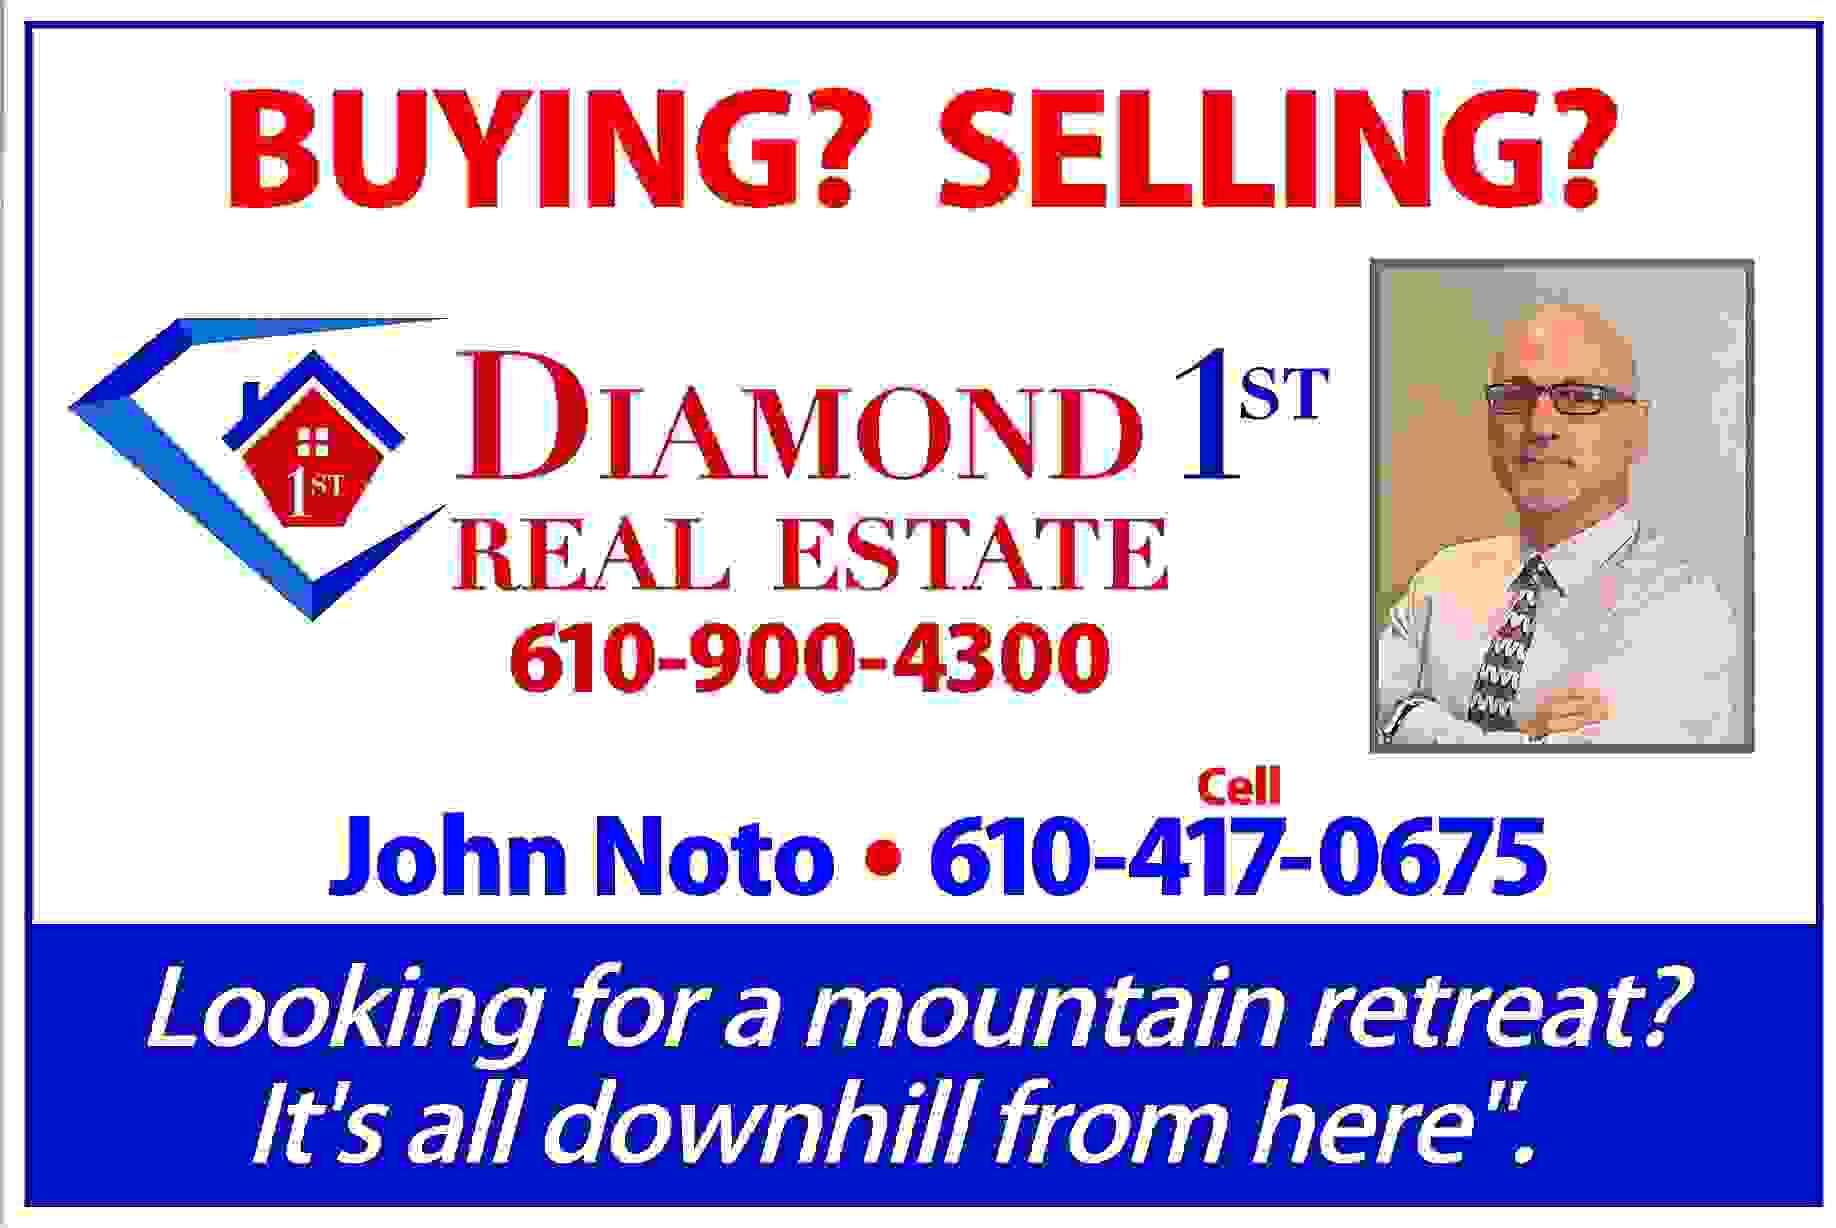 - DIAMOND 1ST | VACATION HOMES | Vacation homes, Land, investments FOR SALE near Blue Mountain.